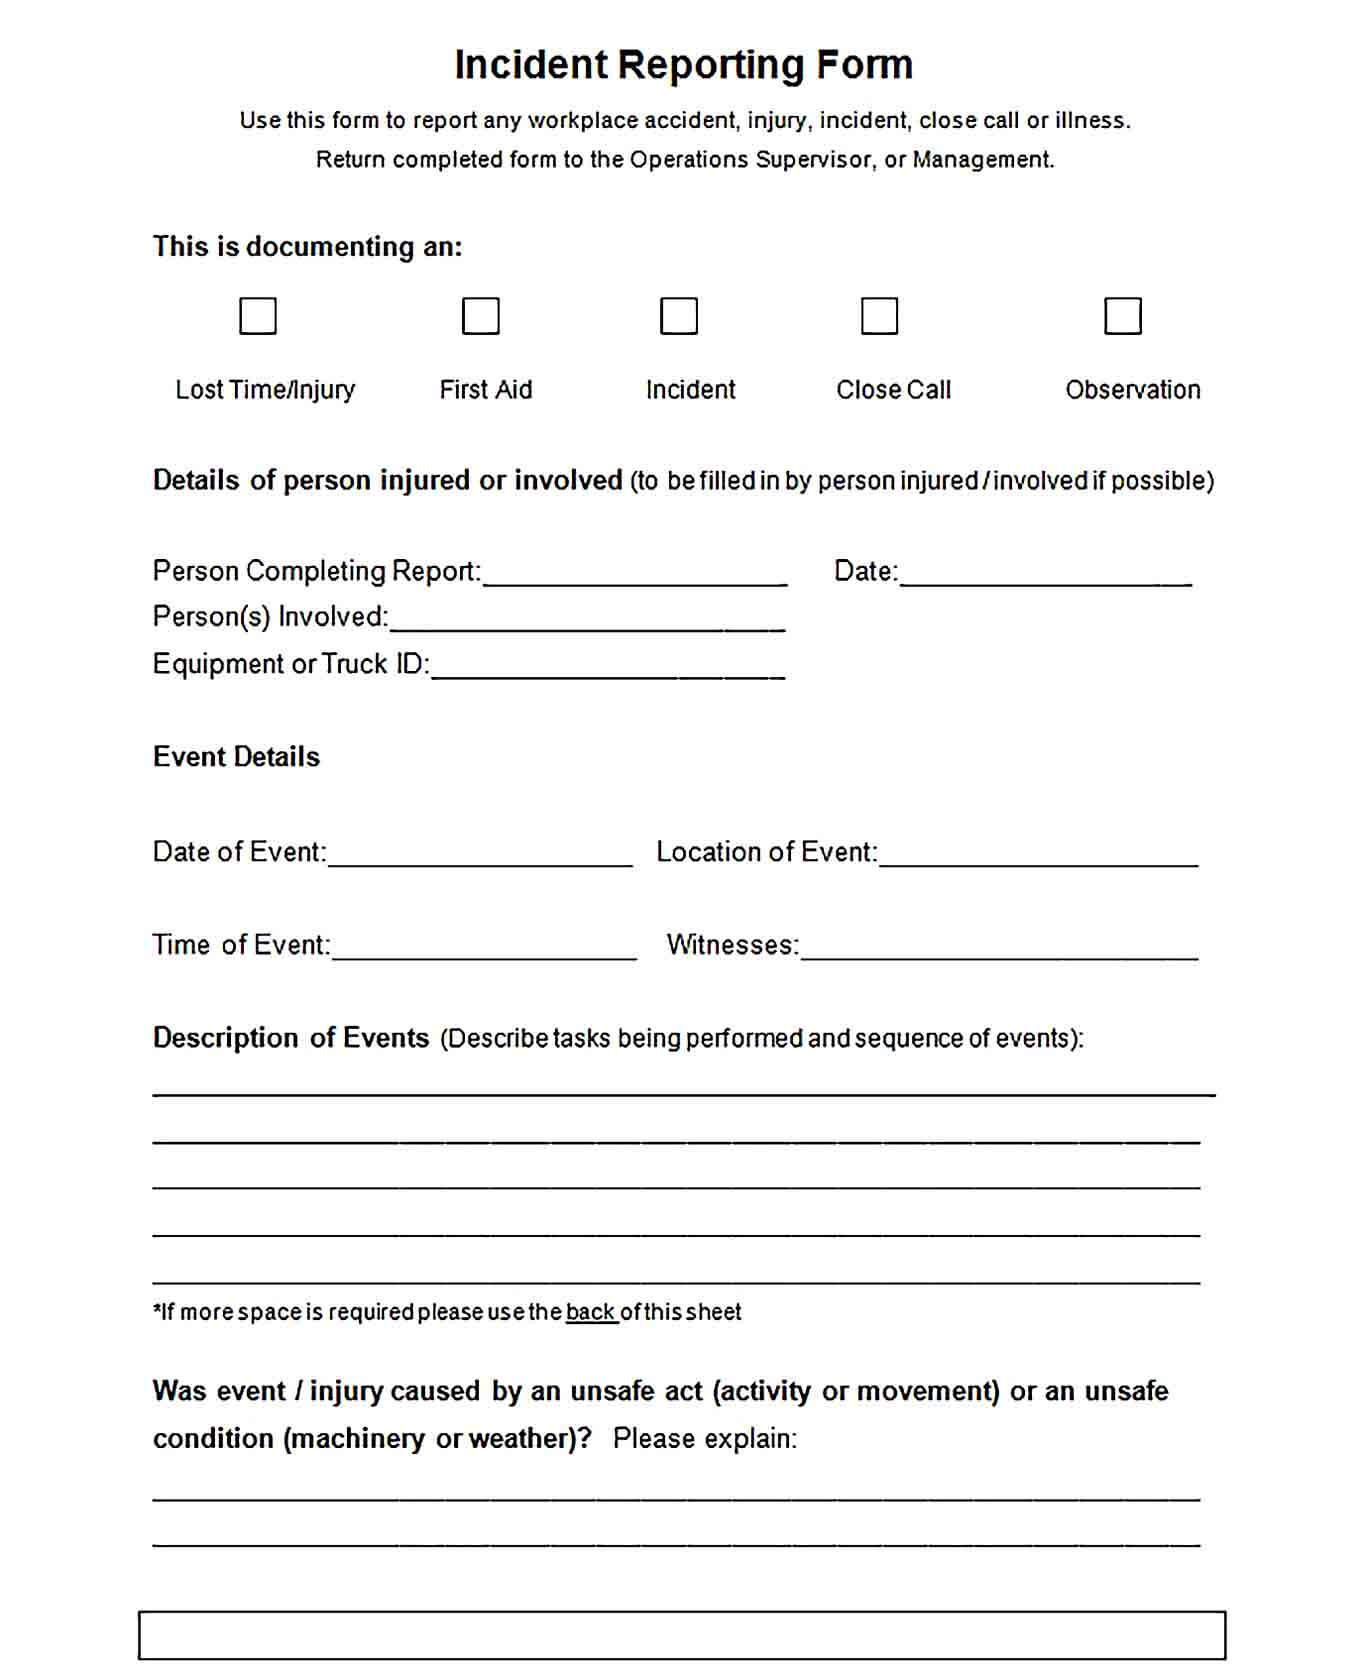 Sample Blank Employee Incident Reporting Form